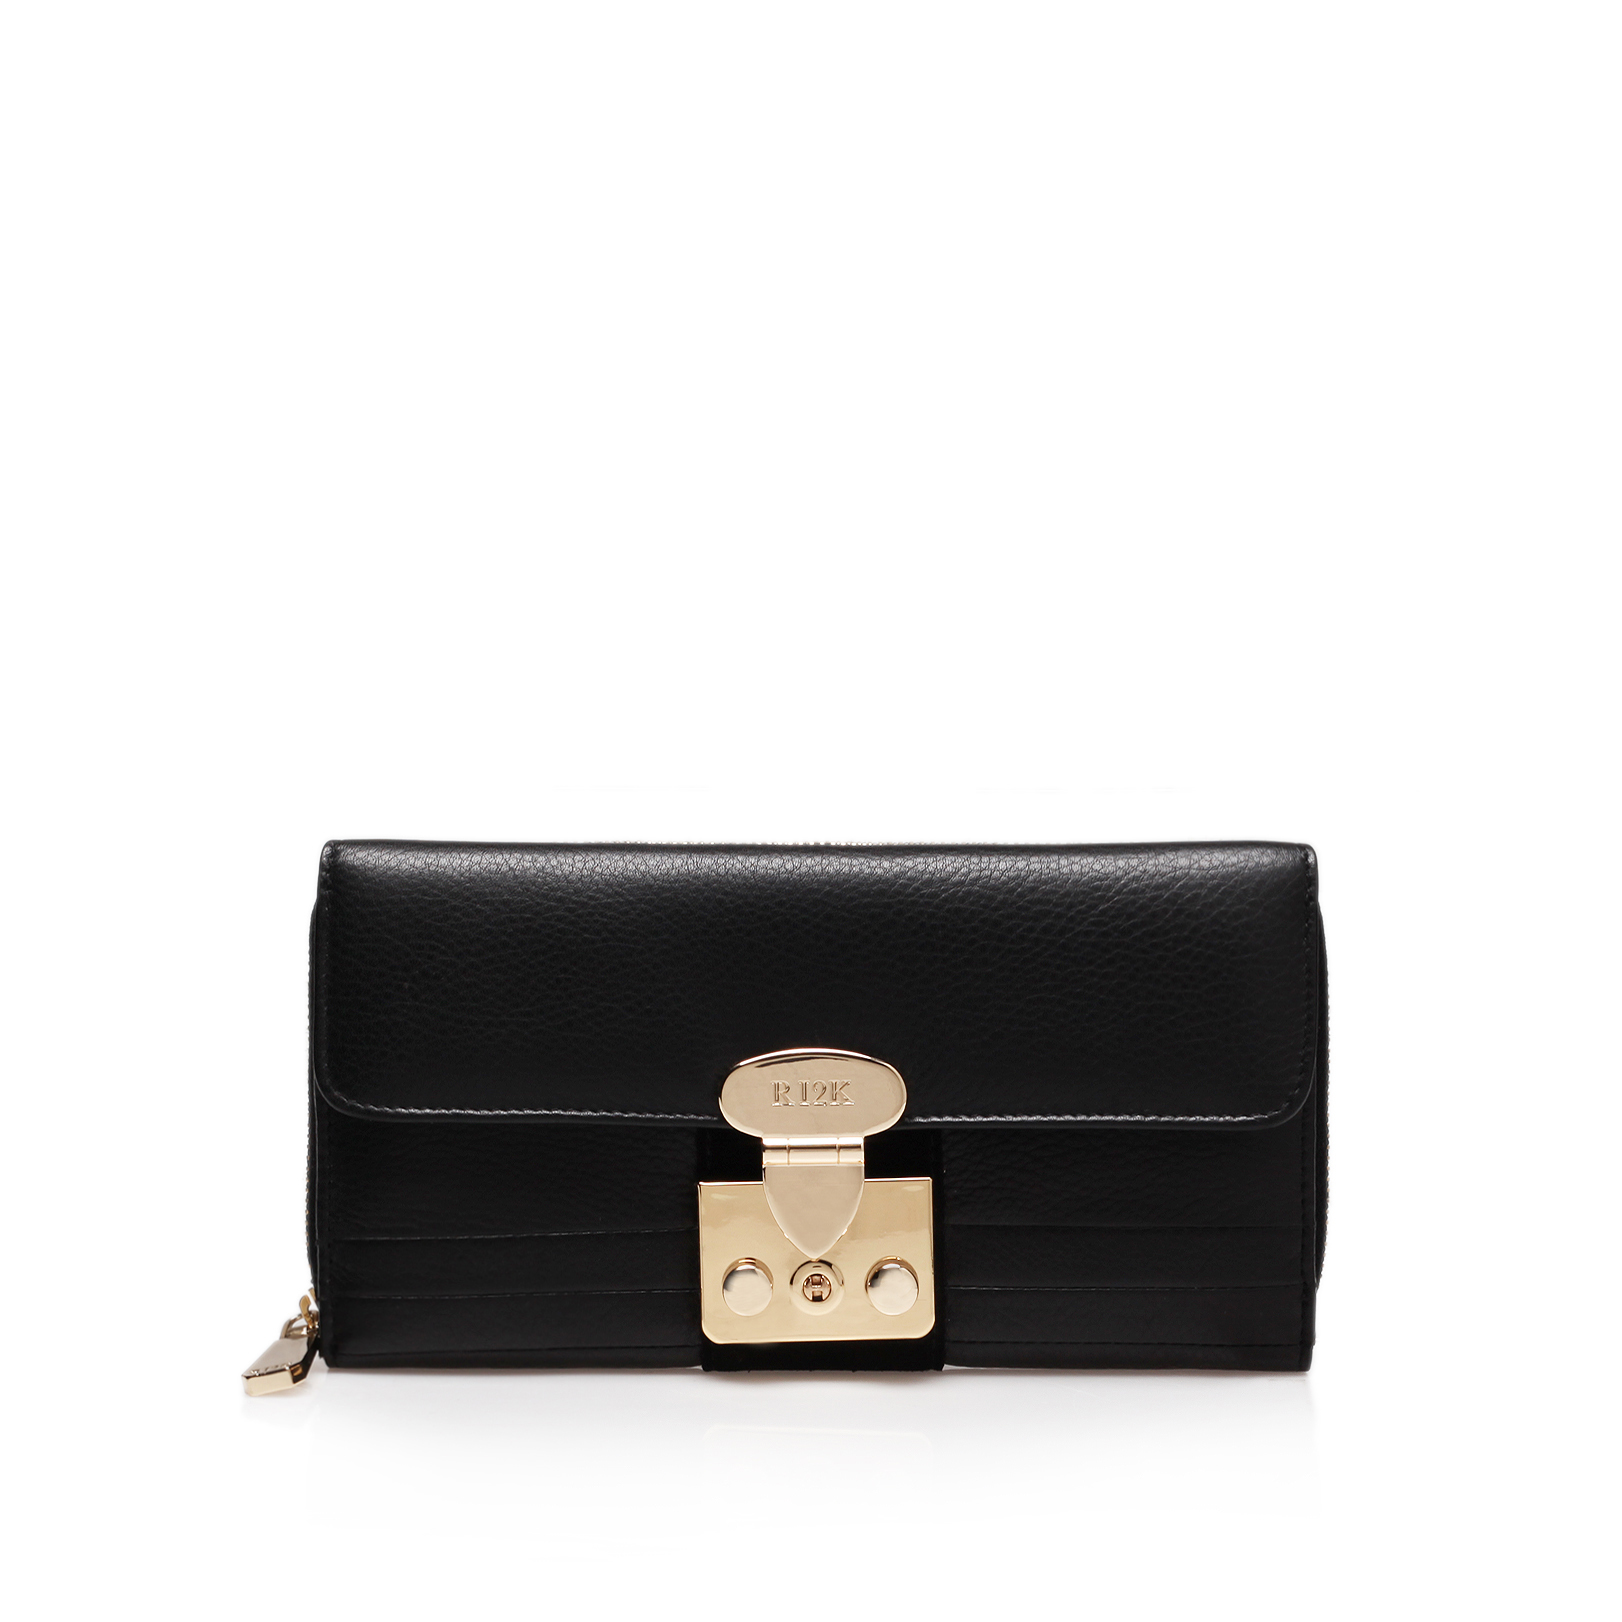 KINGSLAND LEATHER PURSE